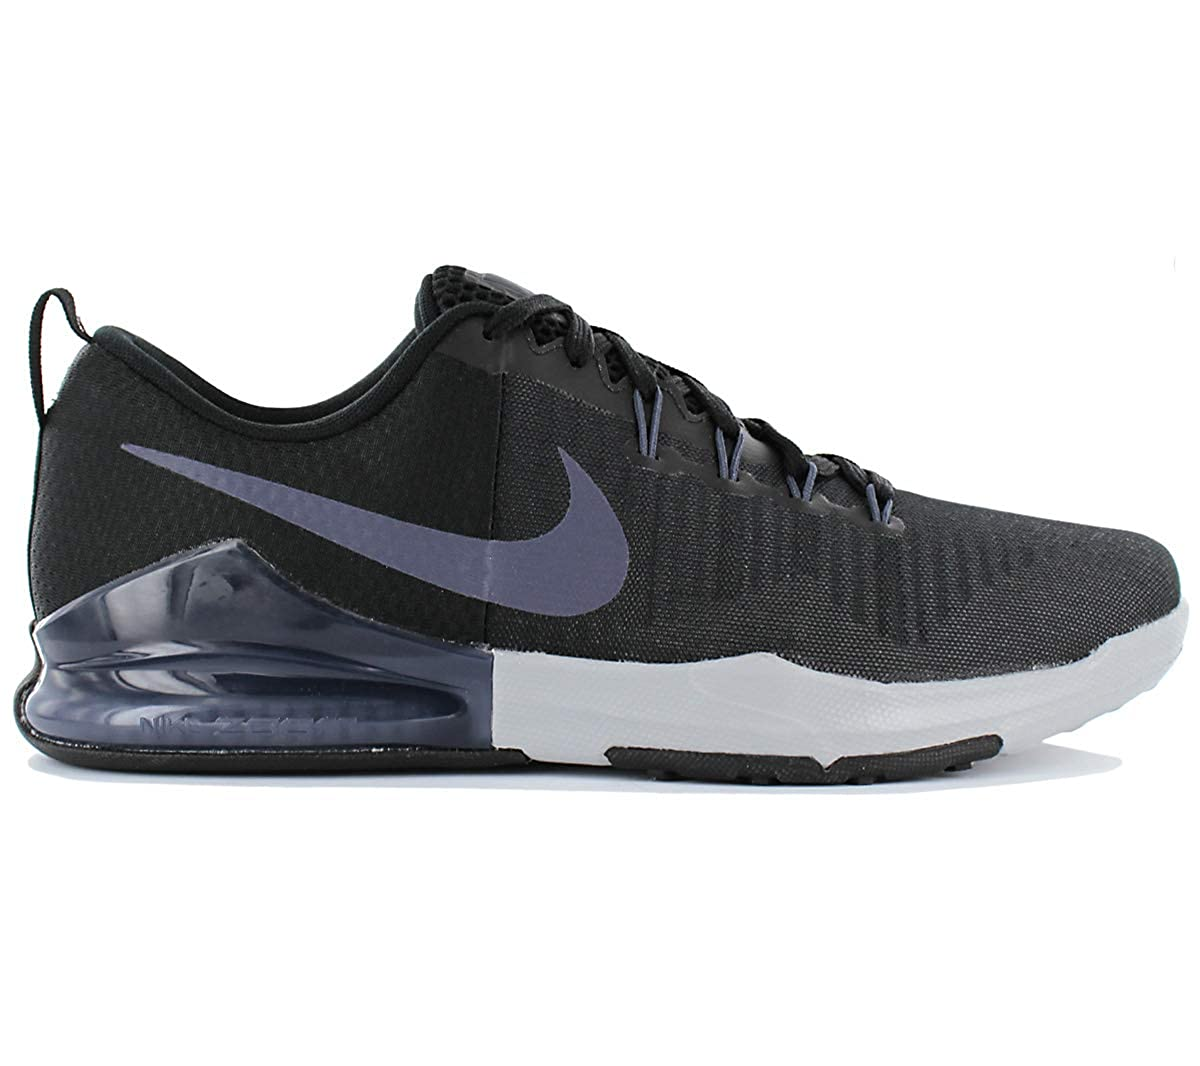 new product a7008 30c2c Amazon.com   NIKE Zoom Train Action Men s Running Shoes 852438-014    Fashion Sneakers